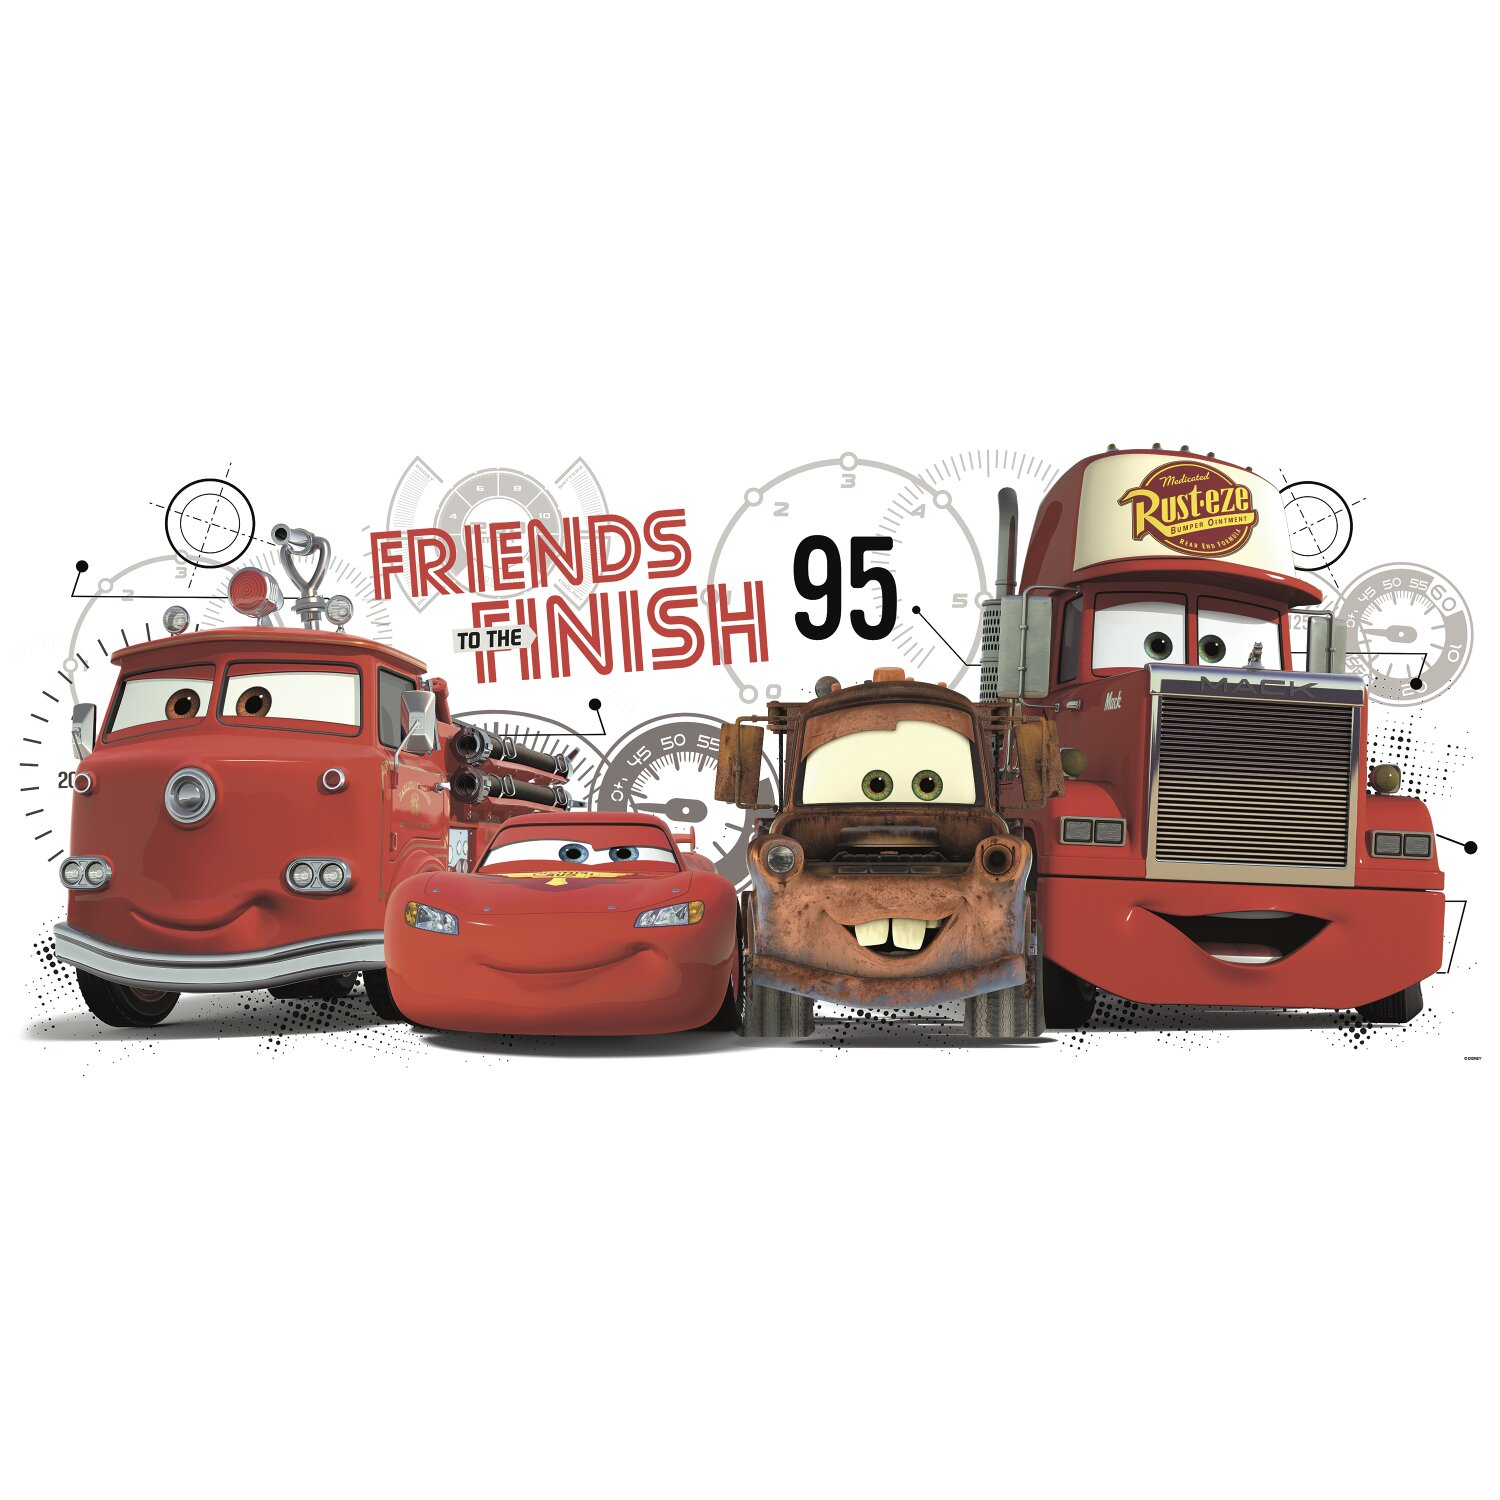 Room Mates Disney Pixar Cars Friends to The Finish Giant Wall Decal